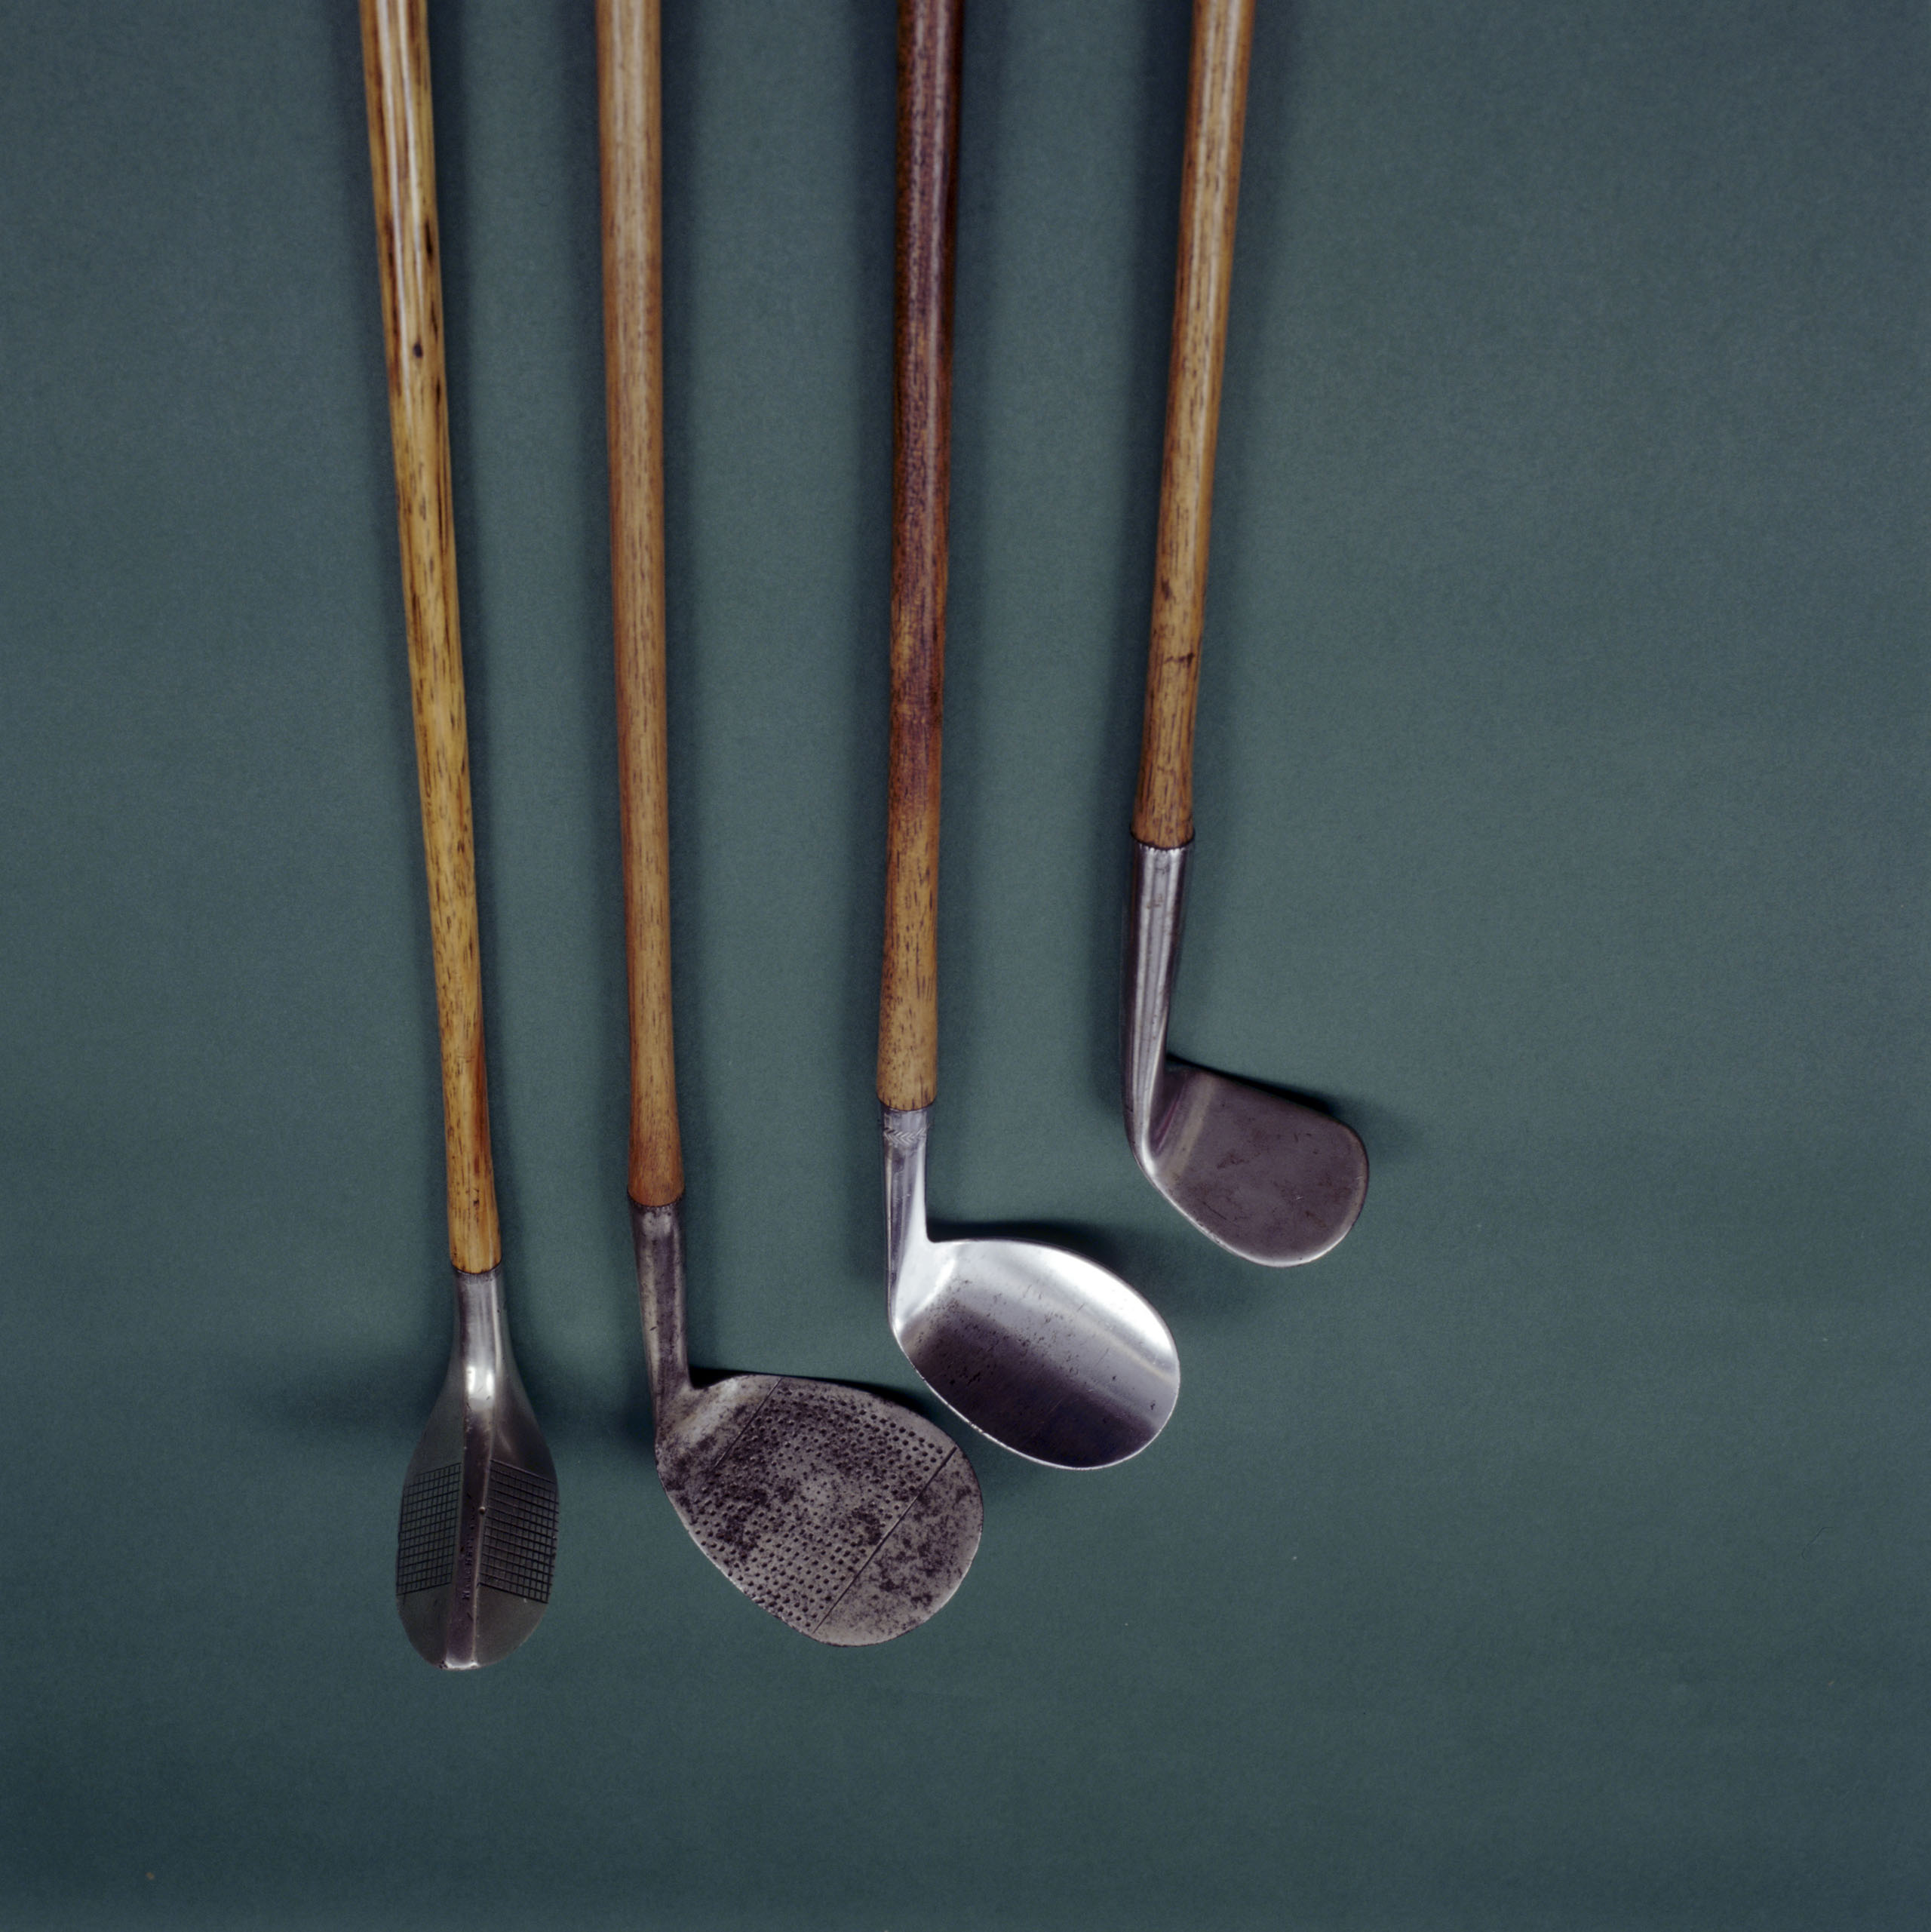 Although passed by technology, niblick remains relevant as a term and in the bags of golf traditionalists. Photo by Sarah Fabian-Baddiel/Heritage Images/Getty Images